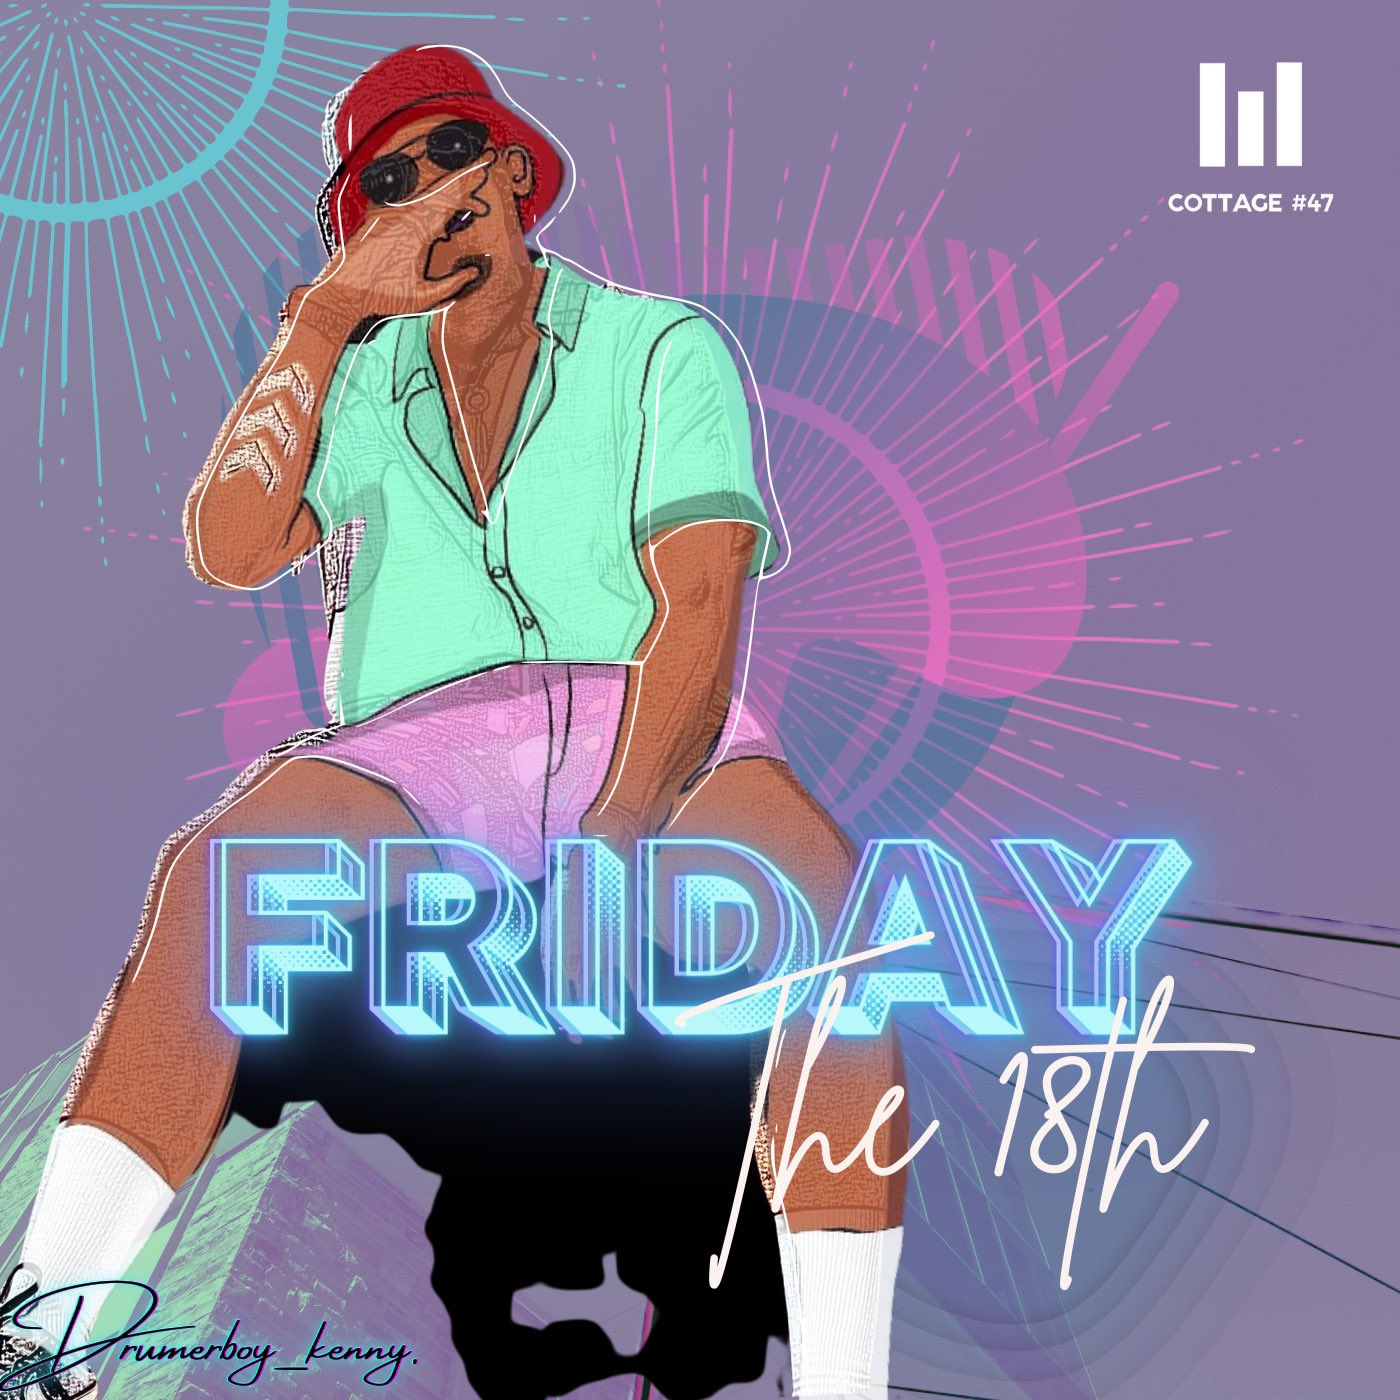 New Music: Friday the 18th EP - Drummerboy_Kenny